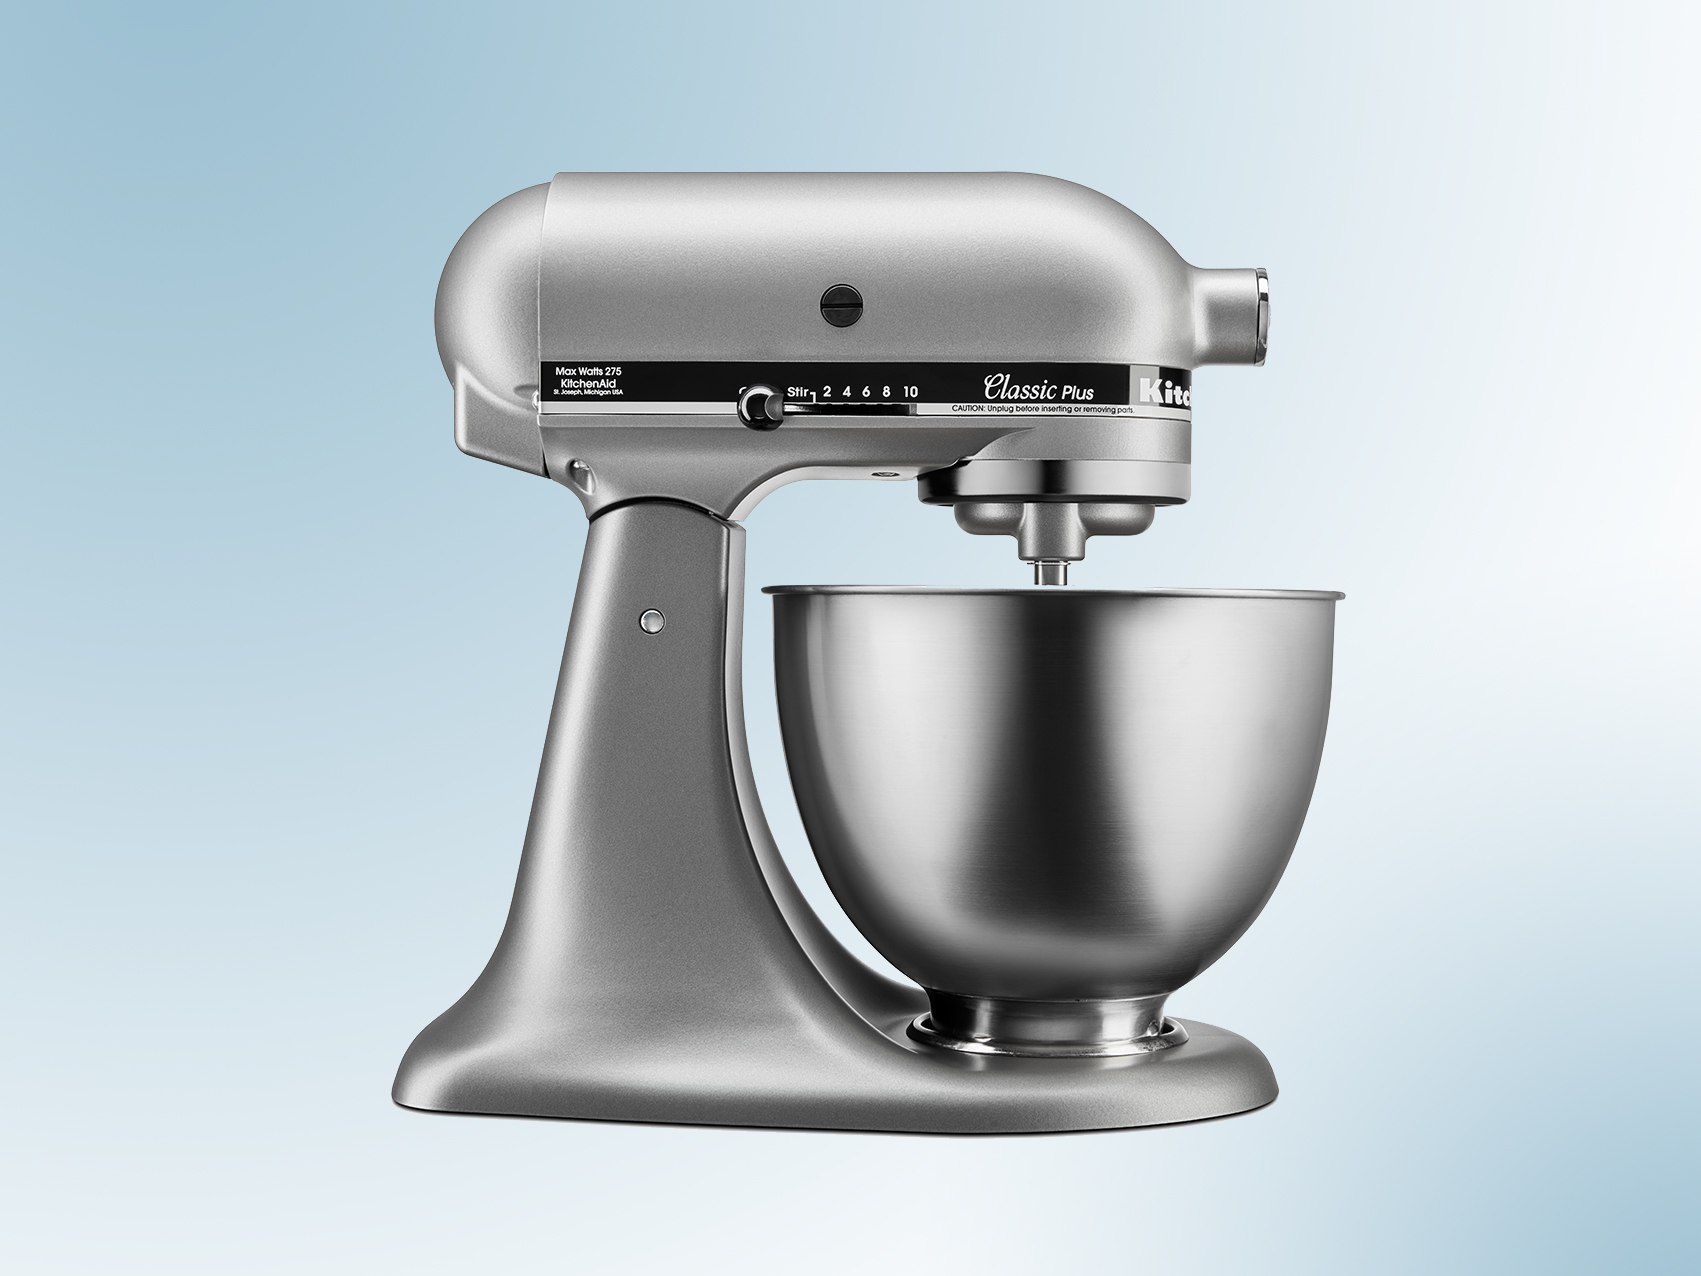 KitchenAid Classic Plus Series 4.5 Quart Tilt-Head Stand Mixer